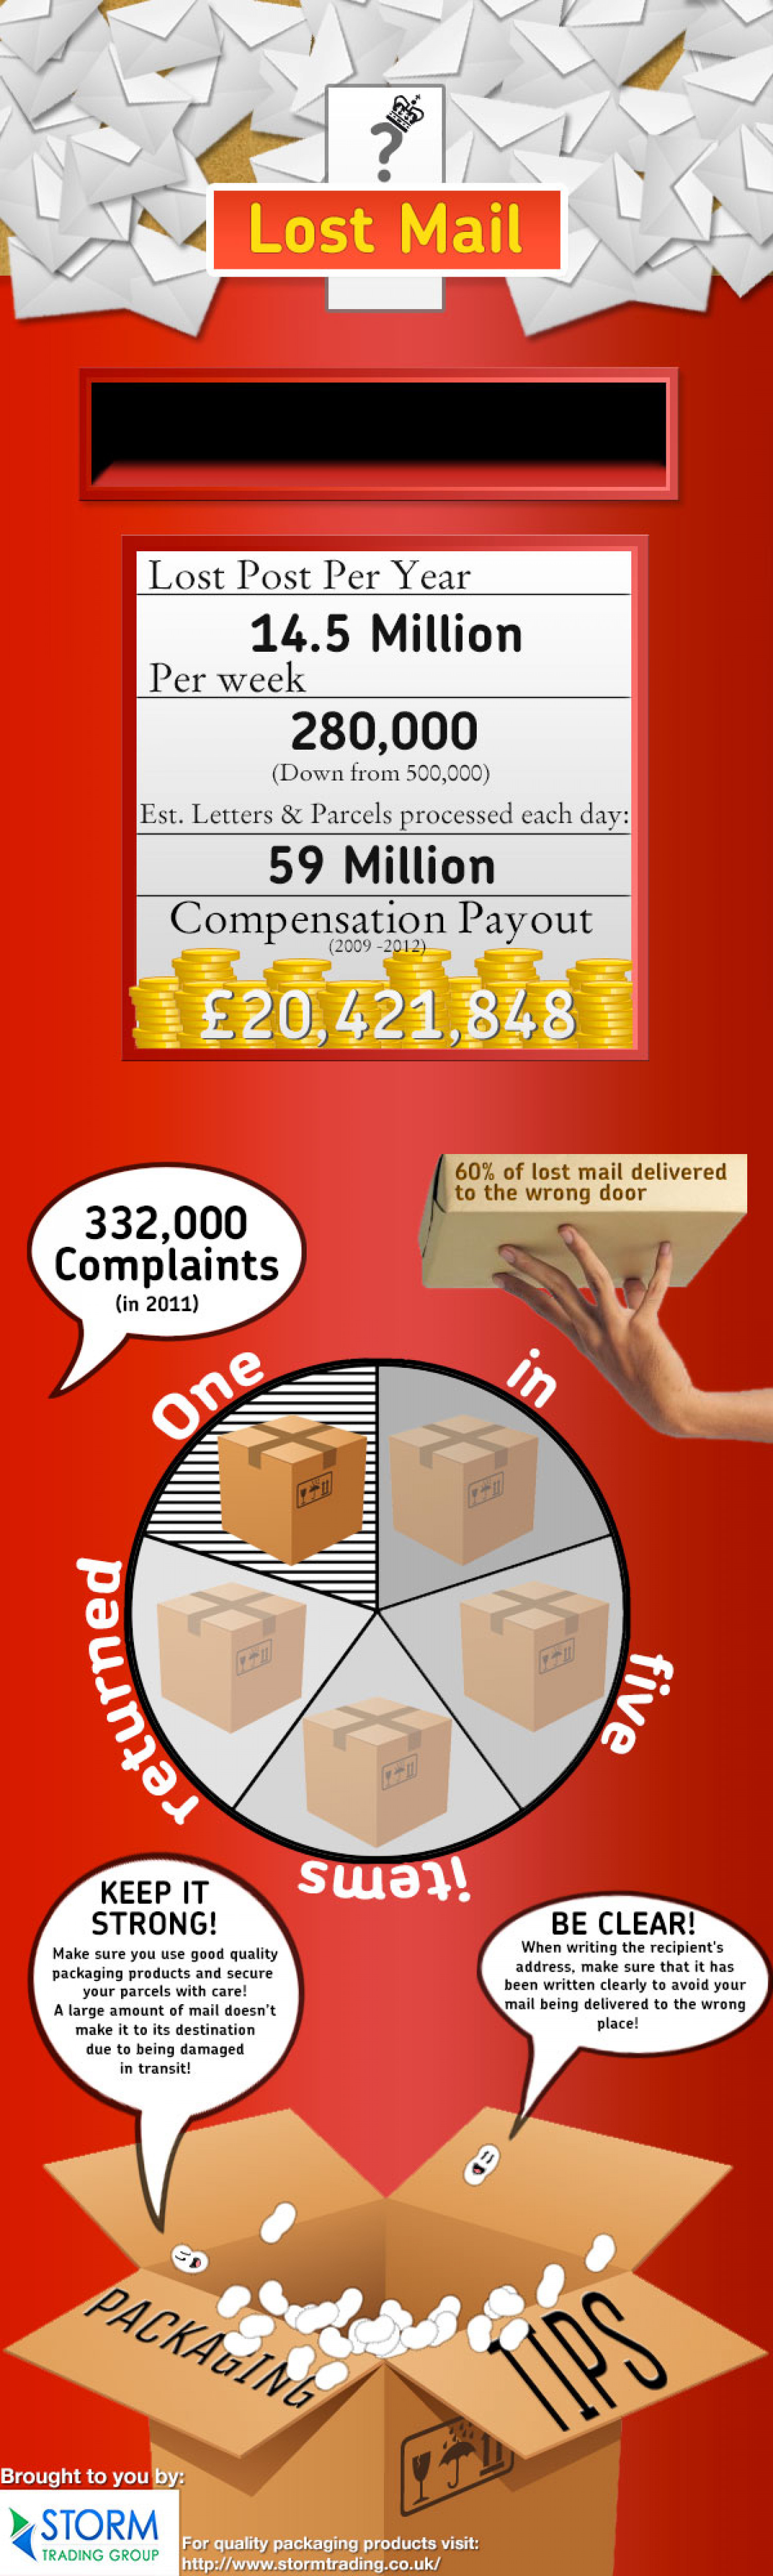 Lost Mail - UK lost and damaged mail statistics Infographic